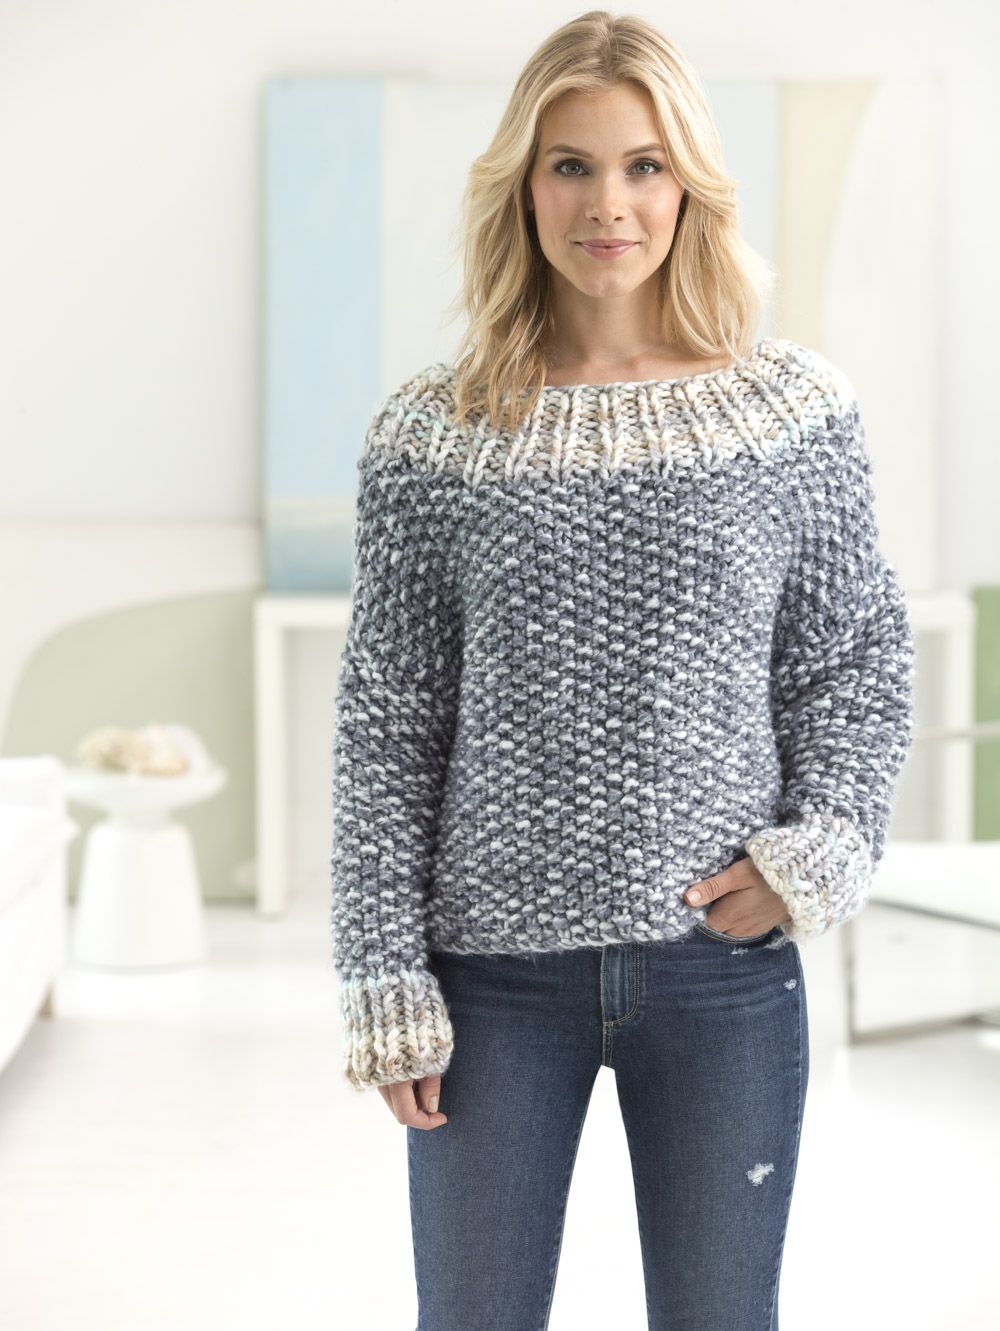 Big Needle Knitting Sweater Patterns : Knit this cozy pullover with new Color Clouds! Free knit pattern calls for 10...